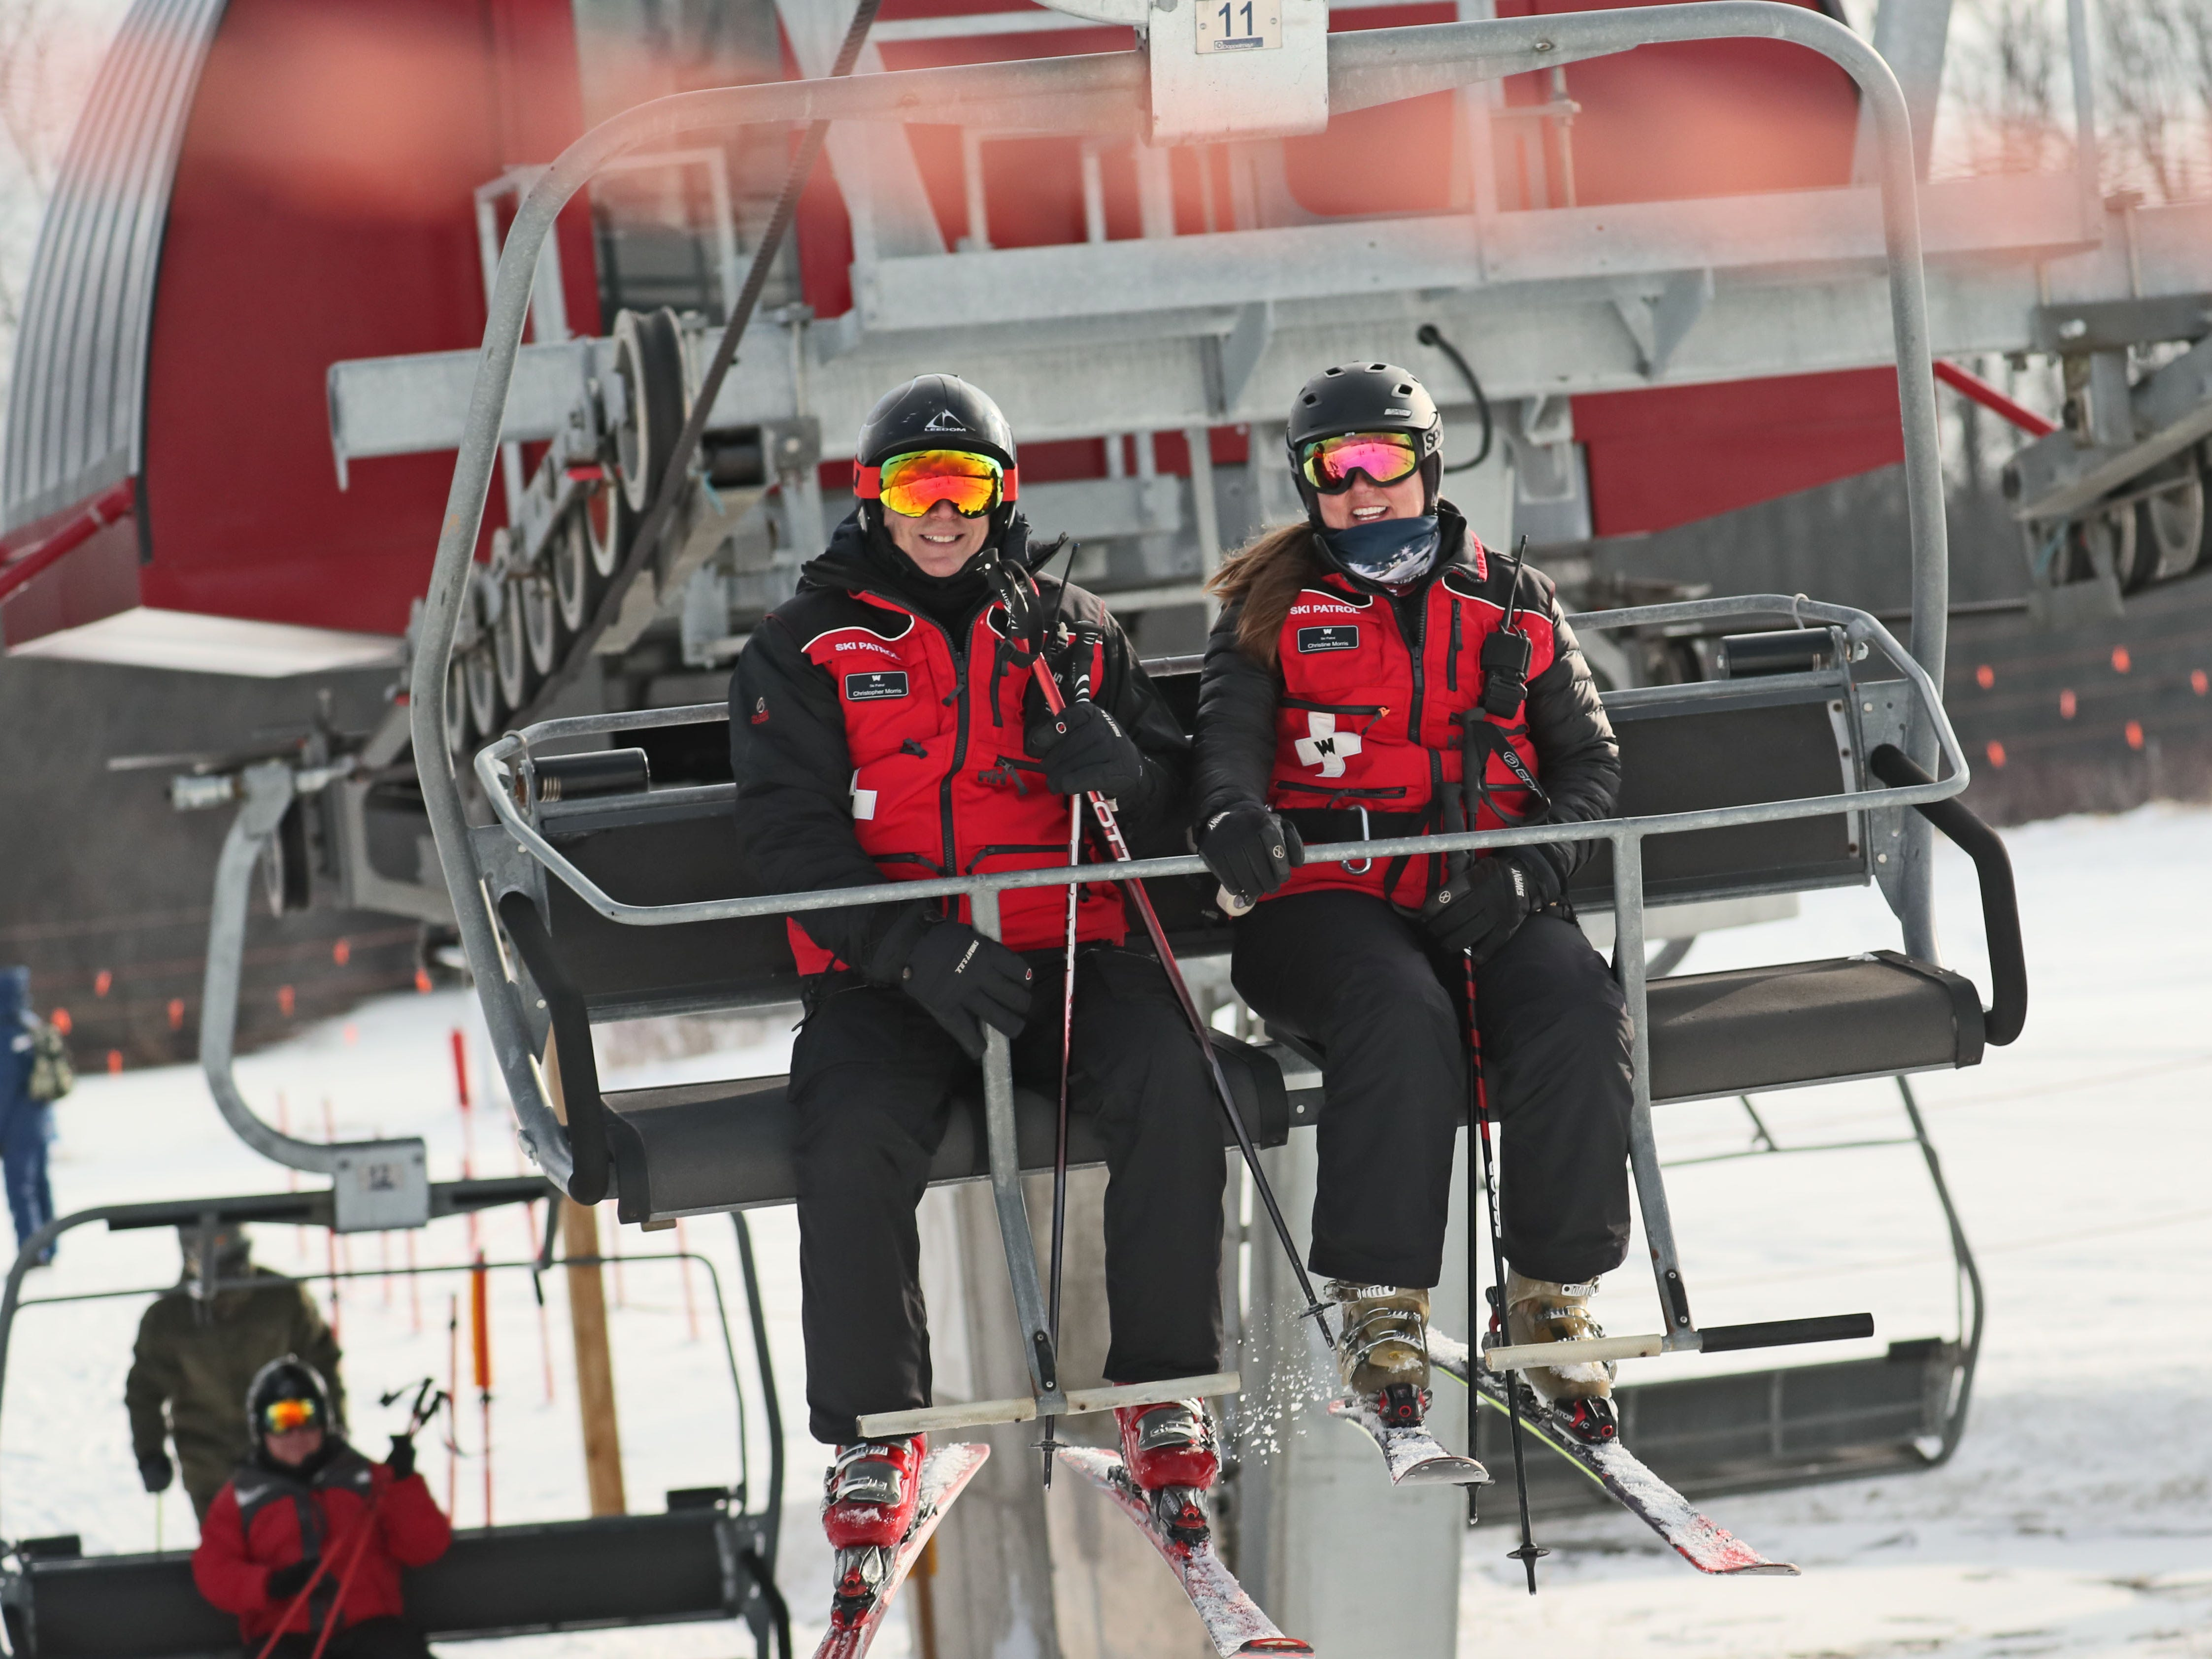 Christopher and Christine Morris met at Wilmot Mountain ski hill near Wilmot and are on the ski patrol together there.